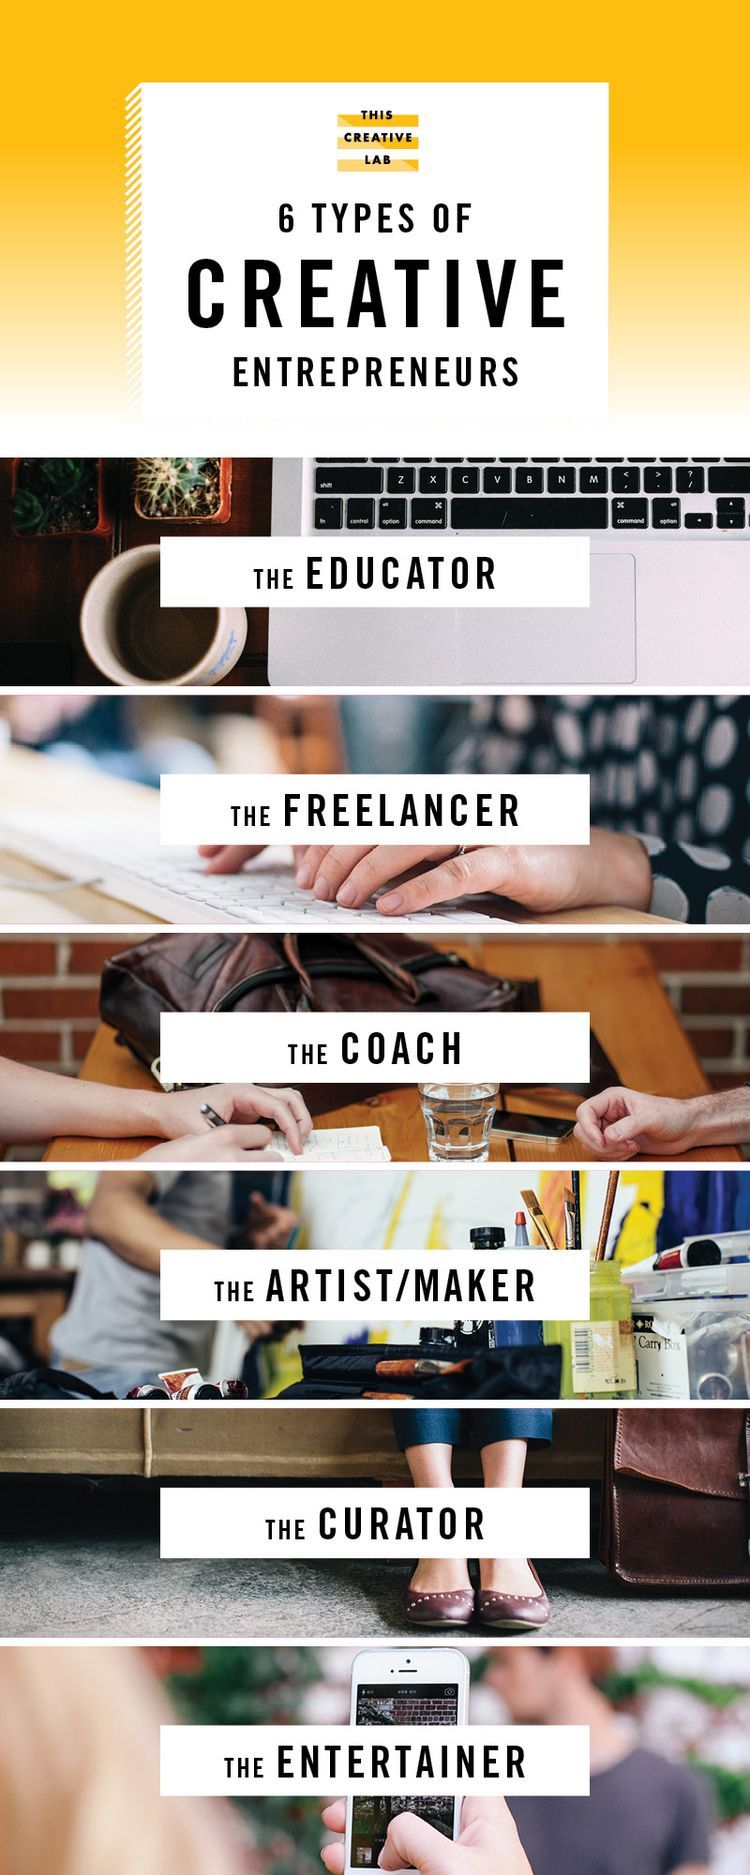 In this post I will highlight 6 of the most common types of creative entrepreneurs, how they generate revenue, and what skills they possess to succeed in this increasingly competitive market. #onlinebusiness #entrepreneur #startup